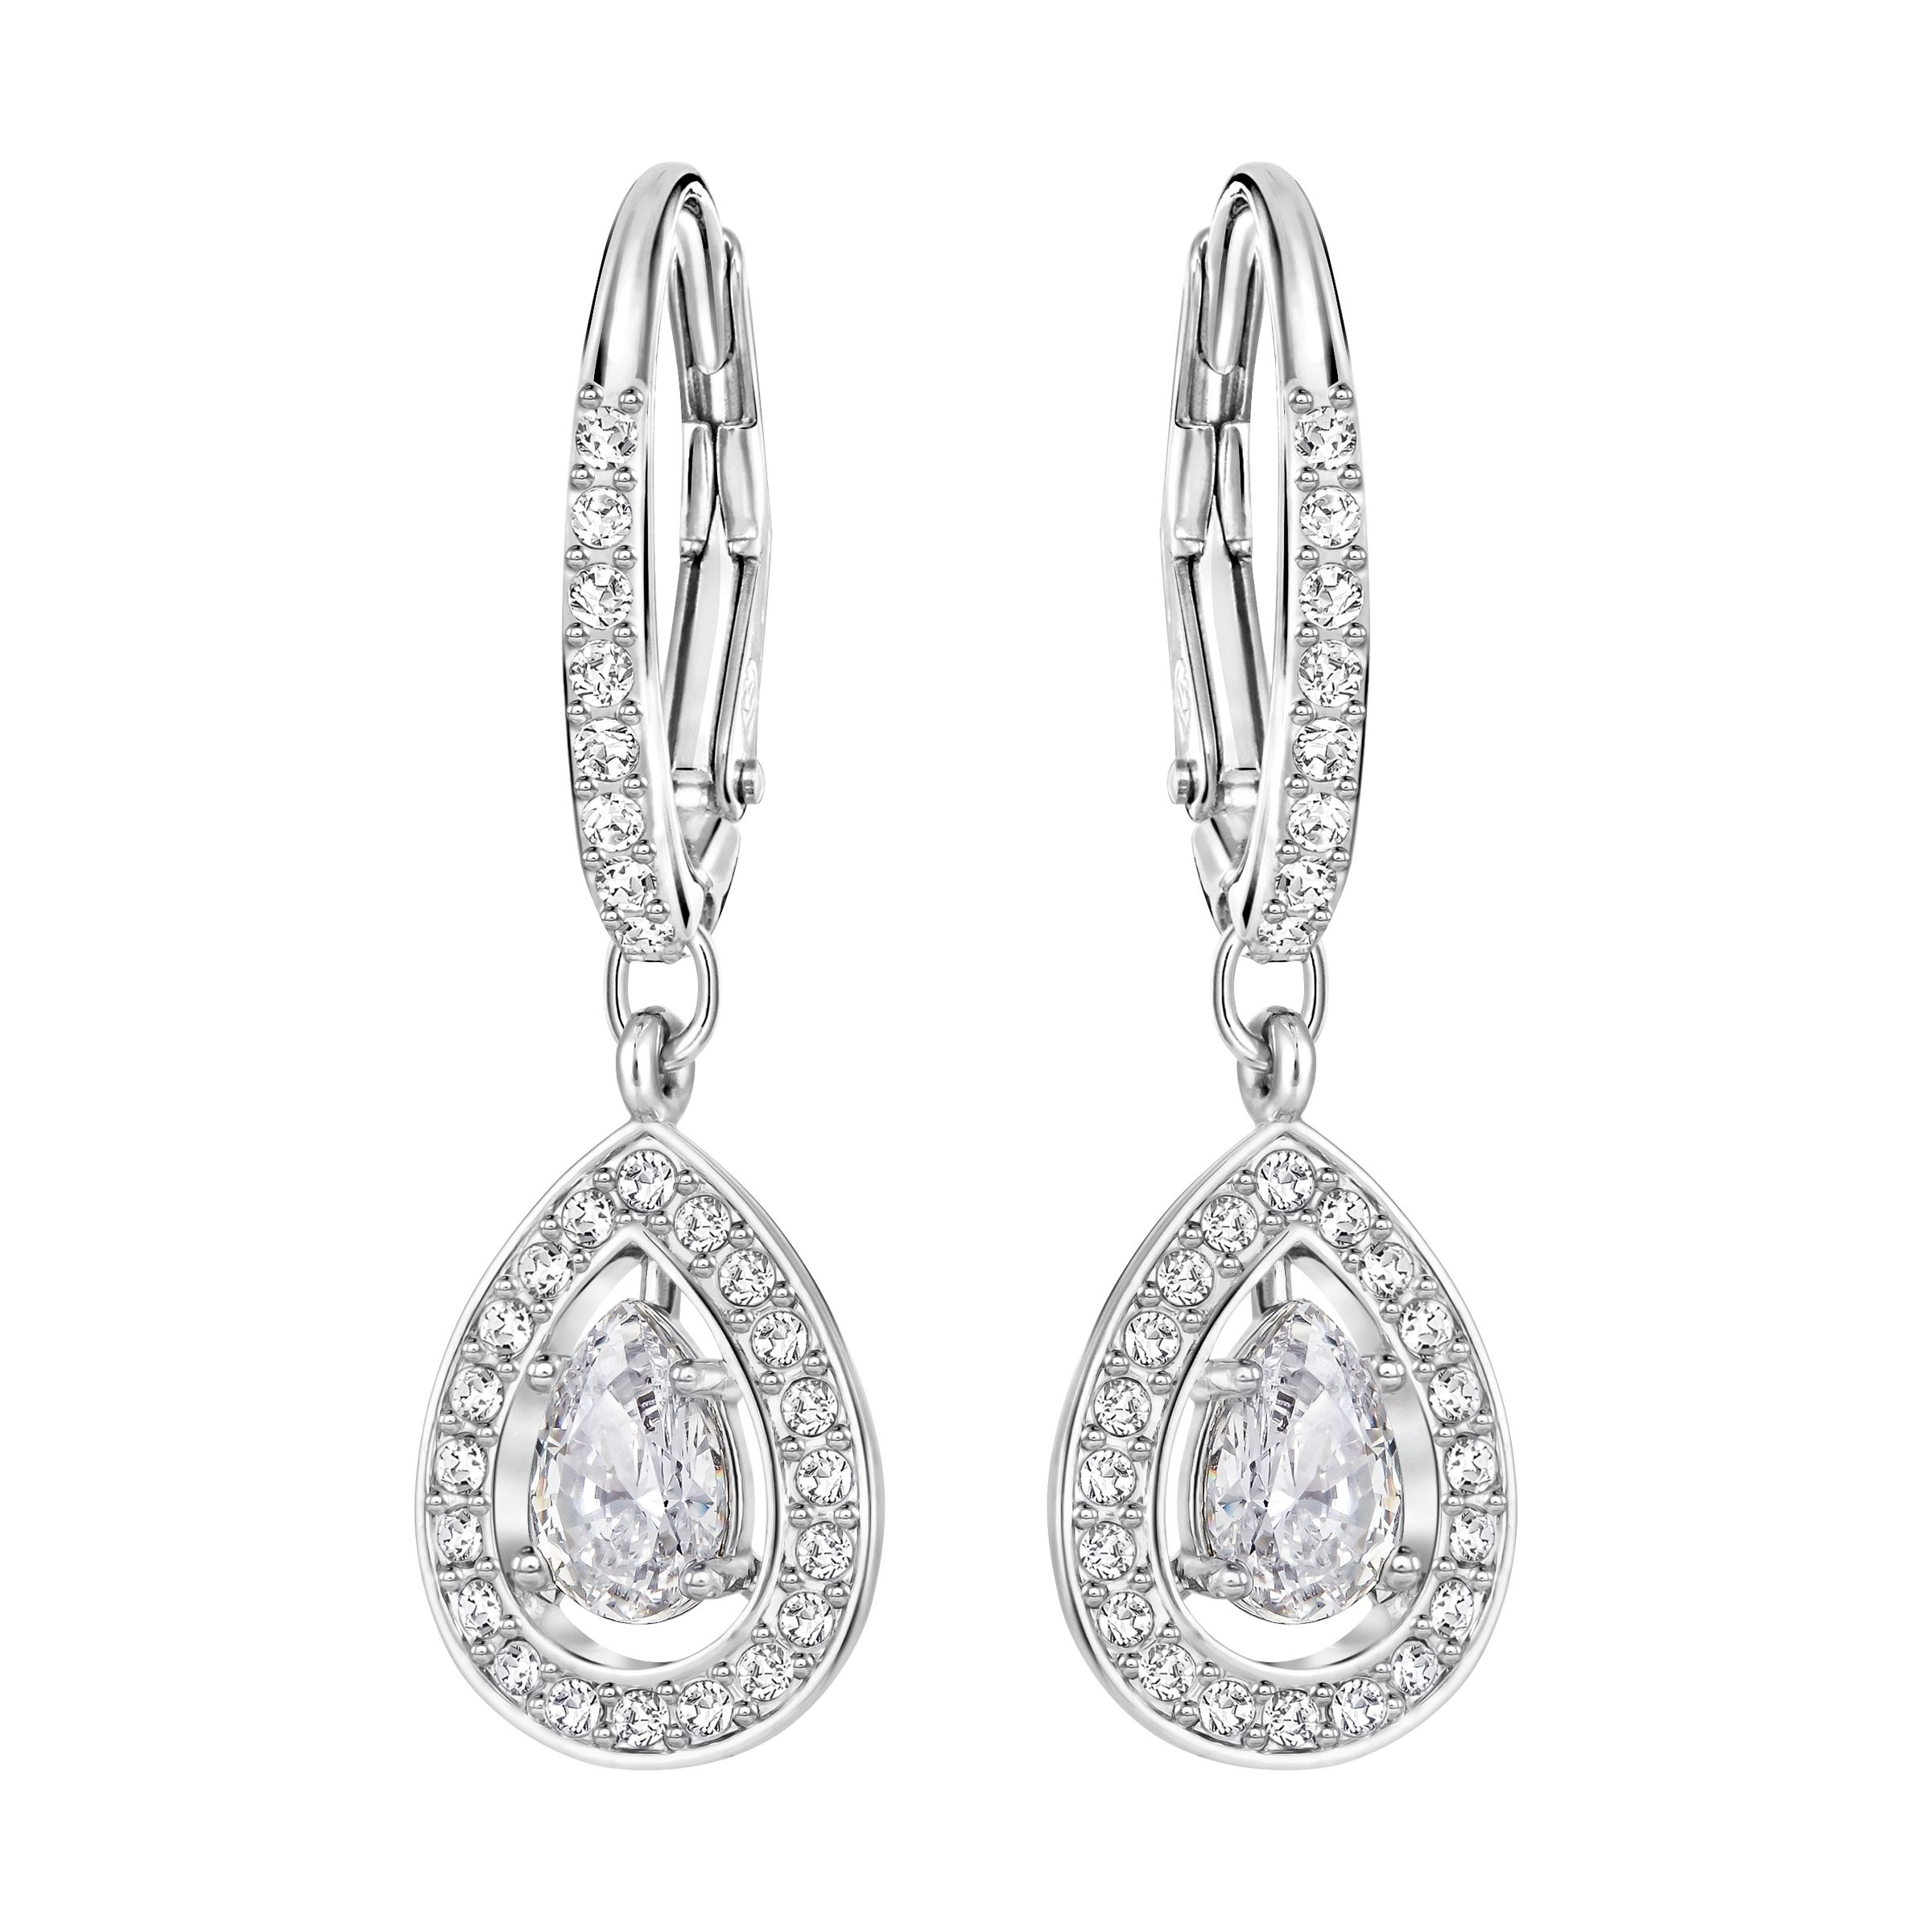 Swarovski Attract light earrings, Silver